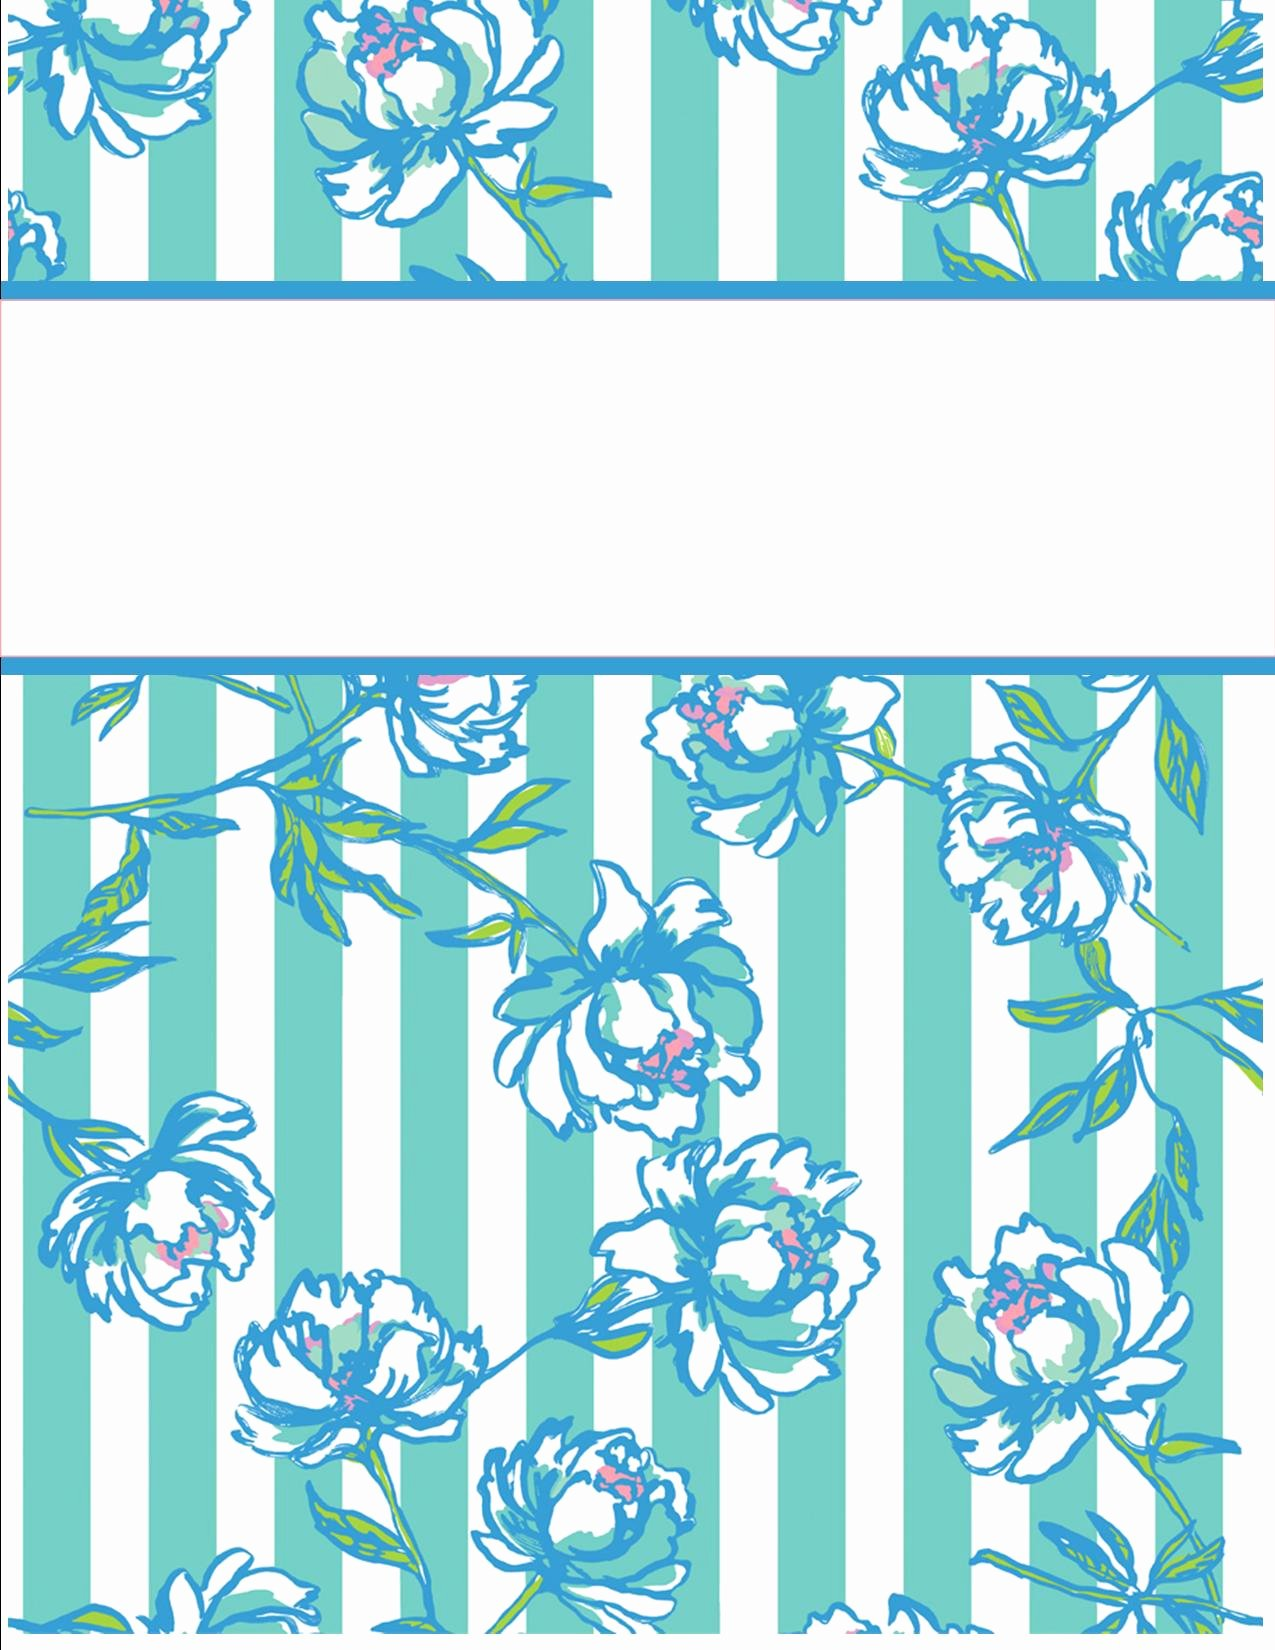 Notebook Cover Design Template Luxury My Cute Binder Covers